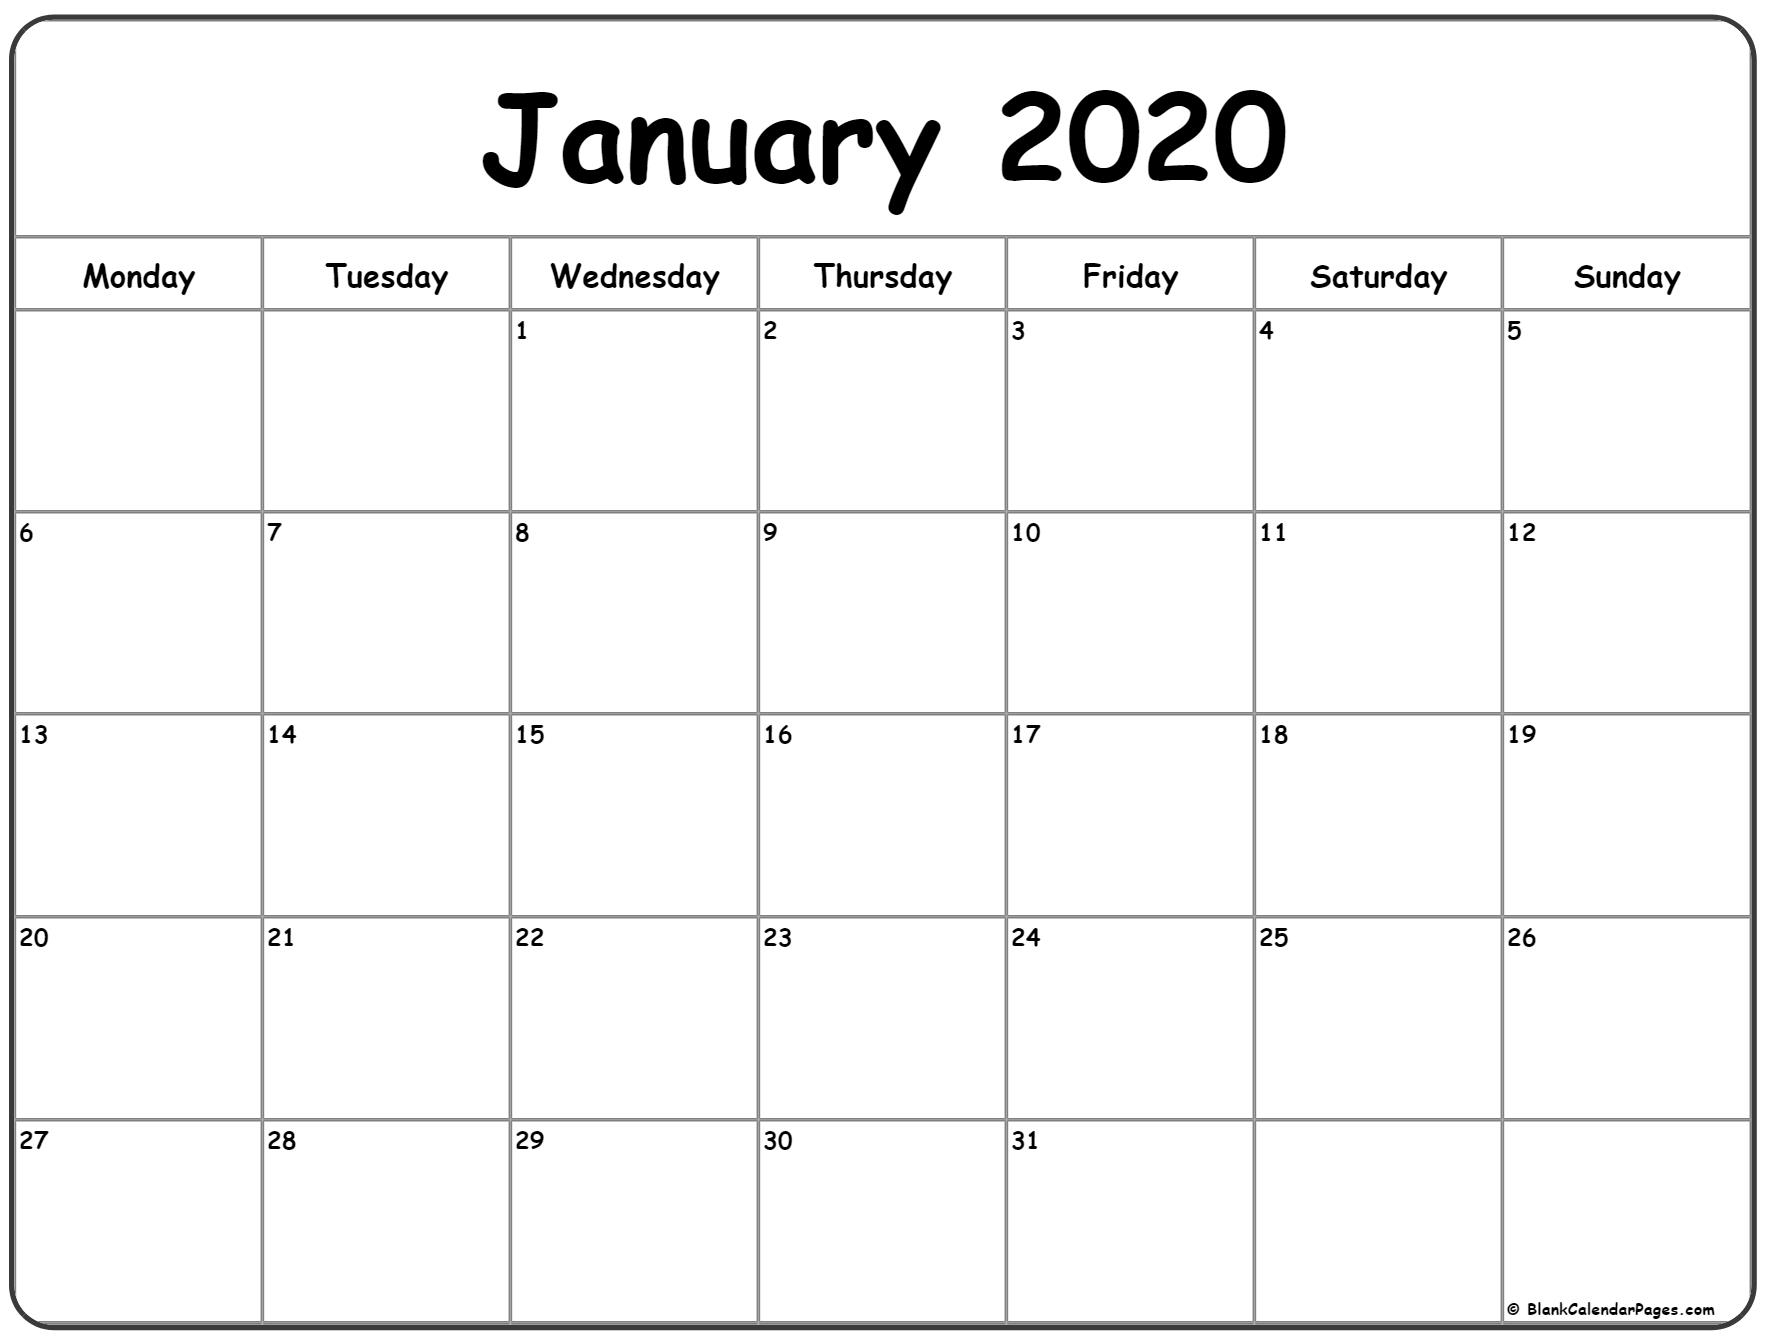 January 2020 Monday Calendar | Monday To Sunday for 2020 Printable Calendars Beginning With Monday